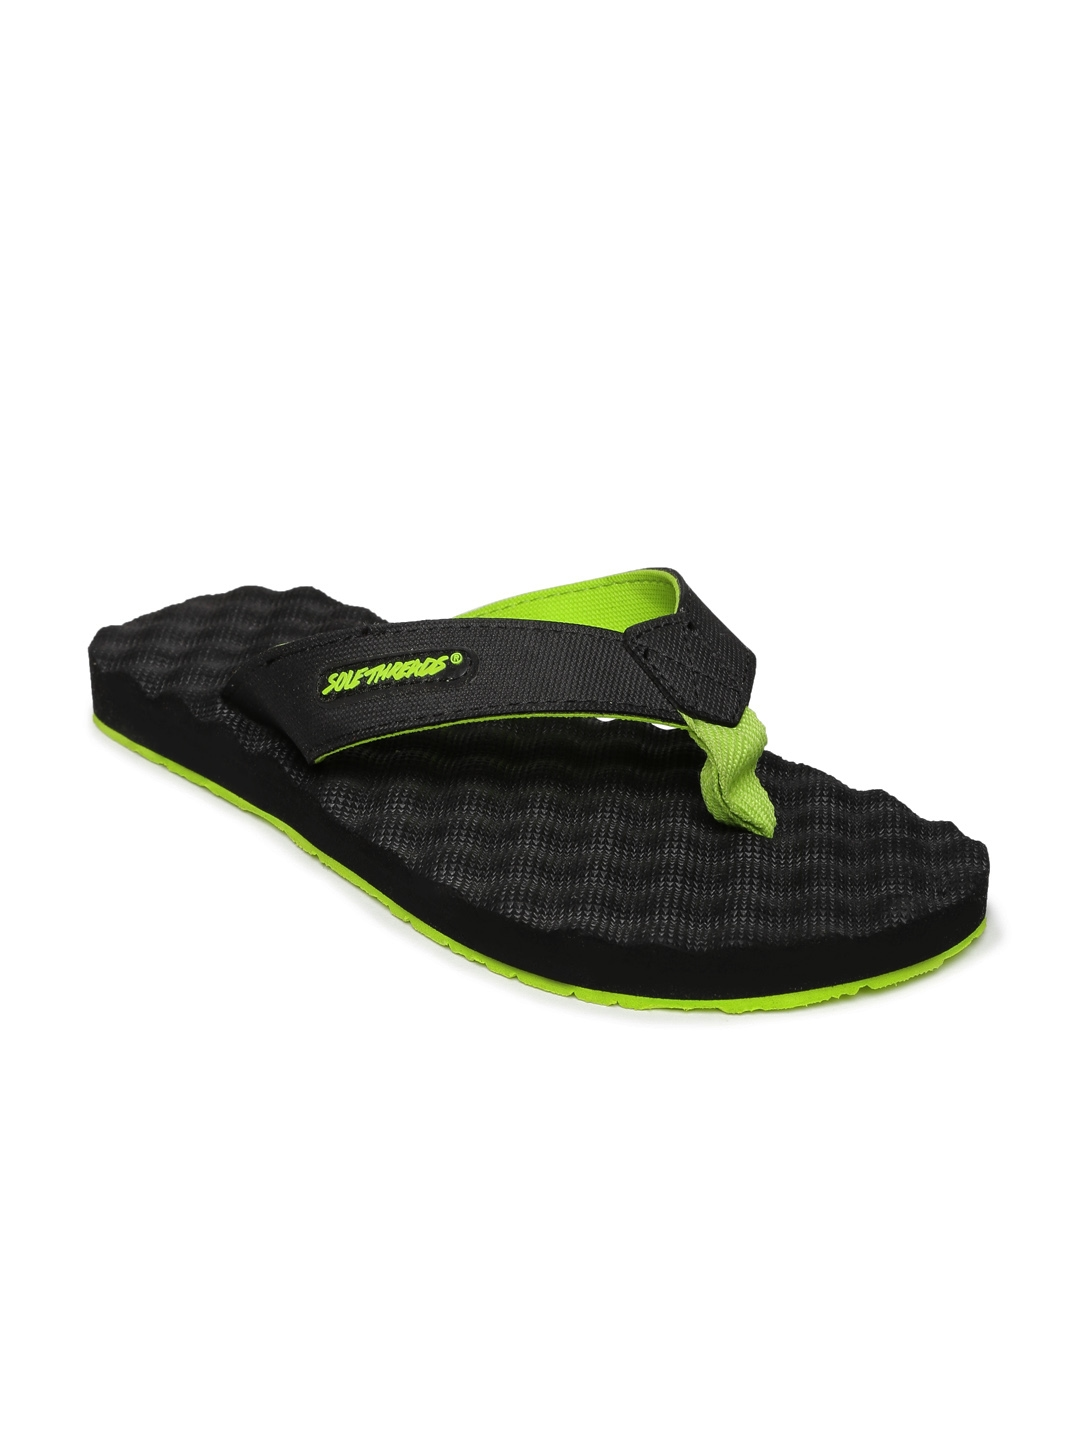 b16d6649273f Buy Sole Threads Men Black Flip Flops - Flip Flops for Men 237398 ...